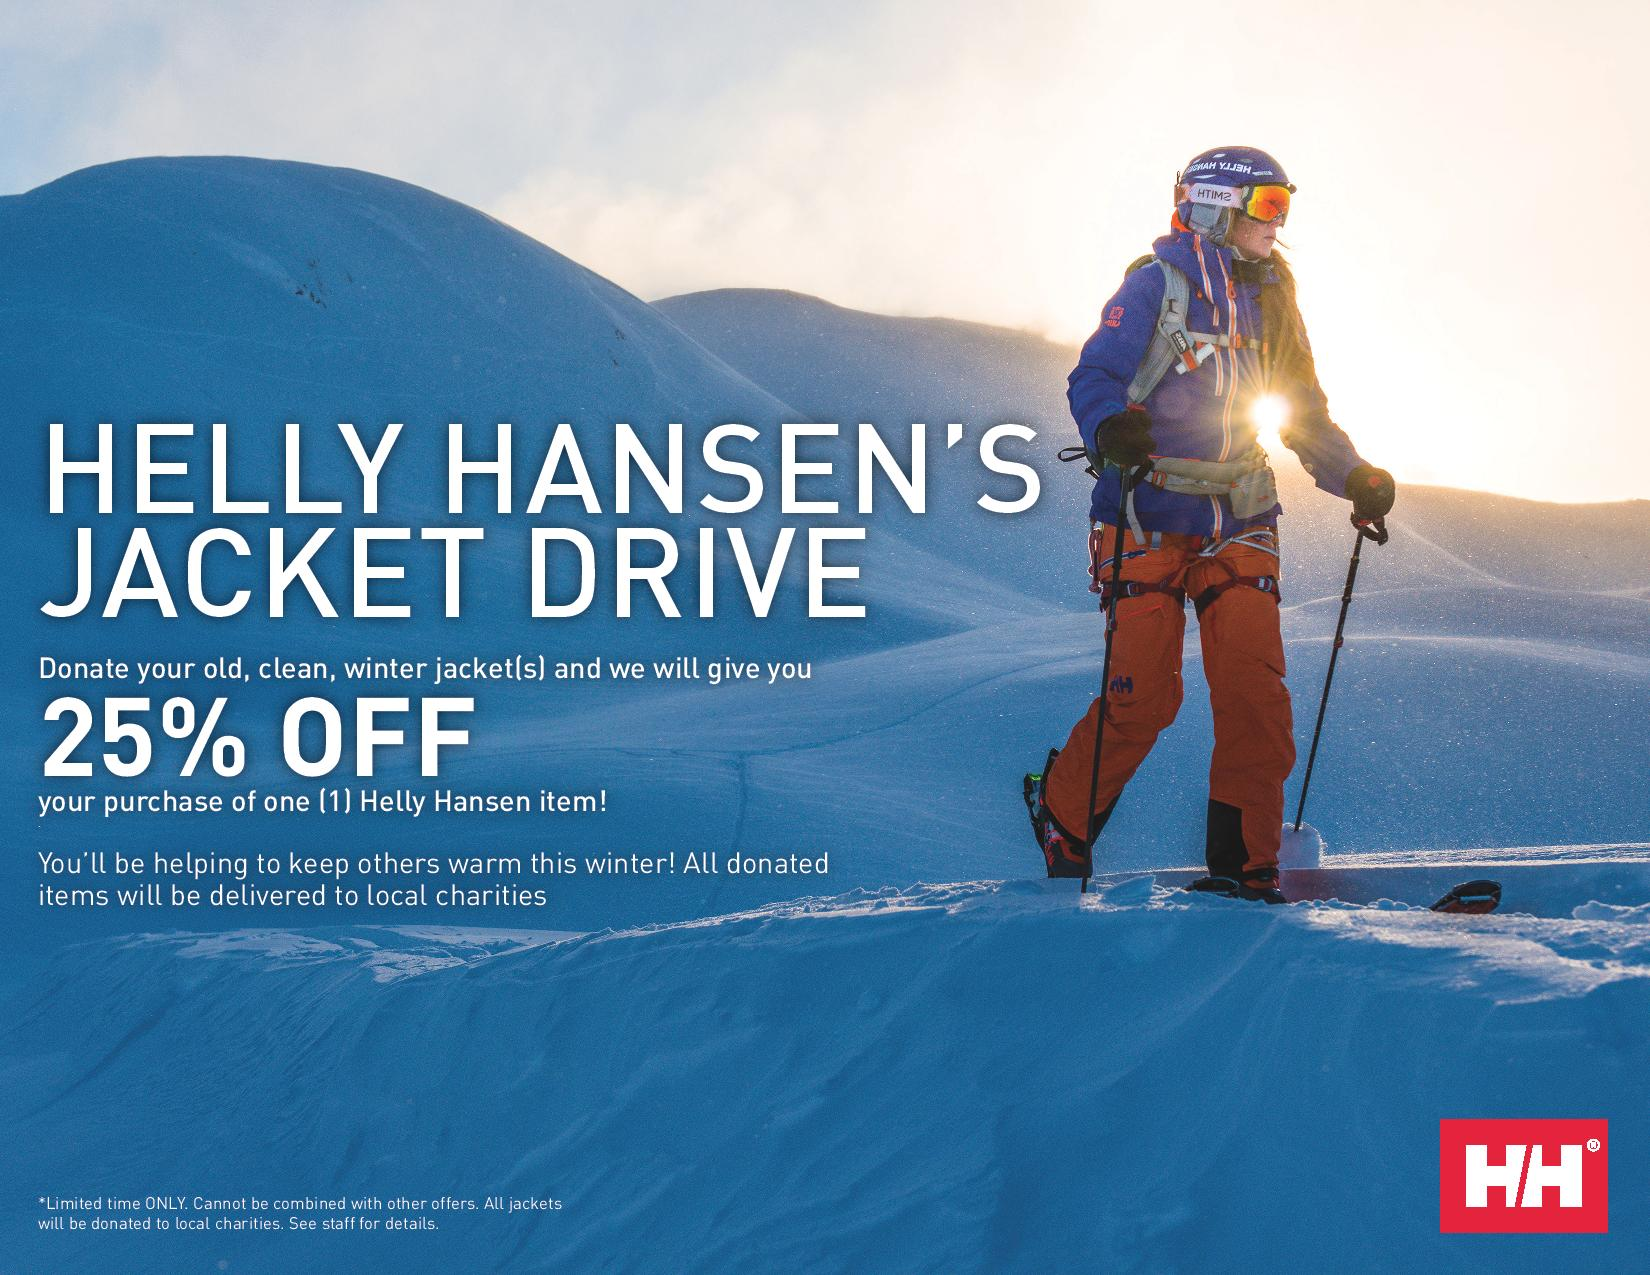 Helly Hansen Coat Drive, rehoboth, delaware, sussex county